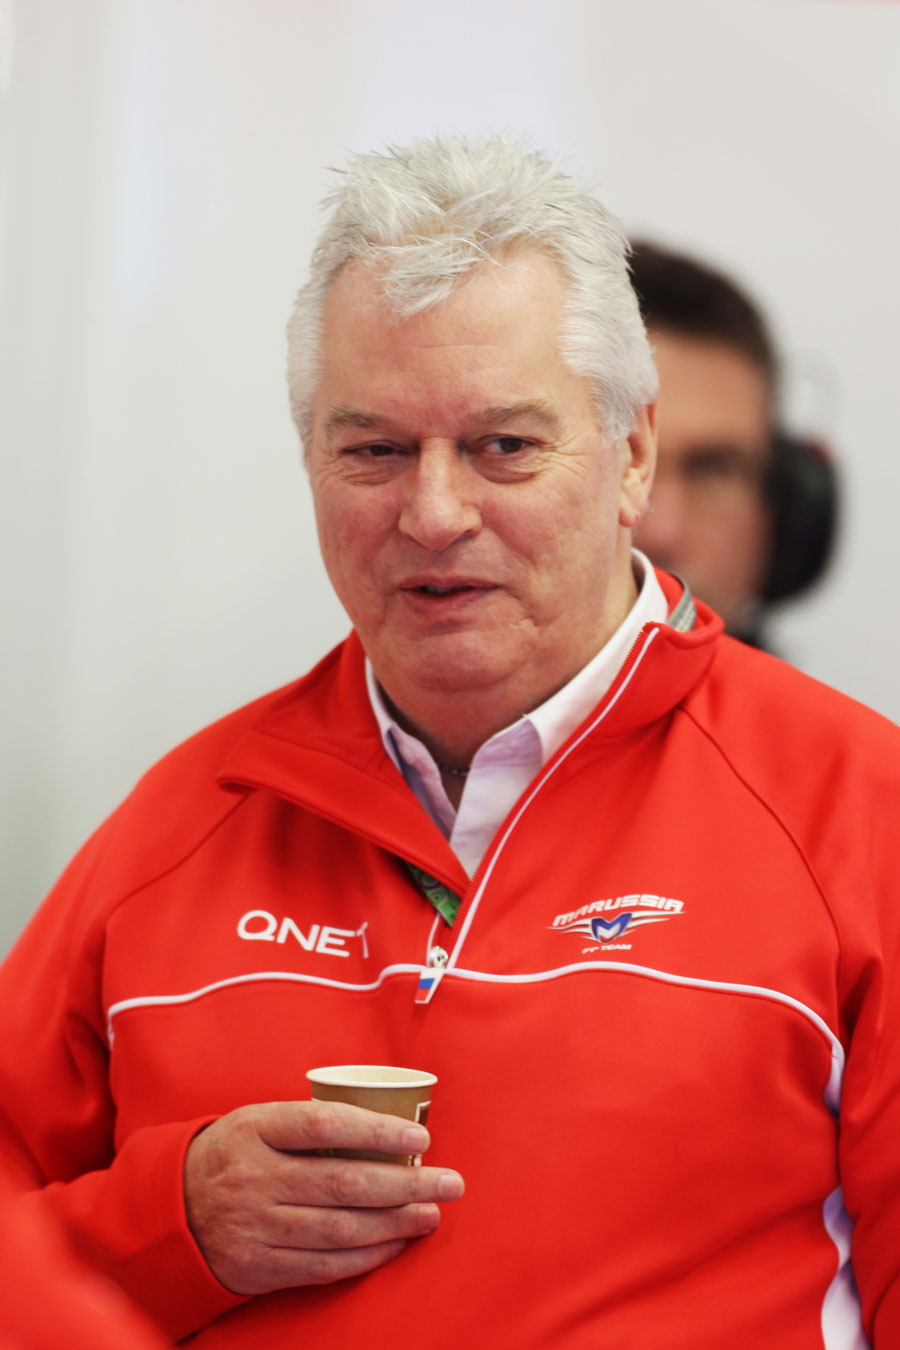 Technical director Pat Symonds in the Marussia garage